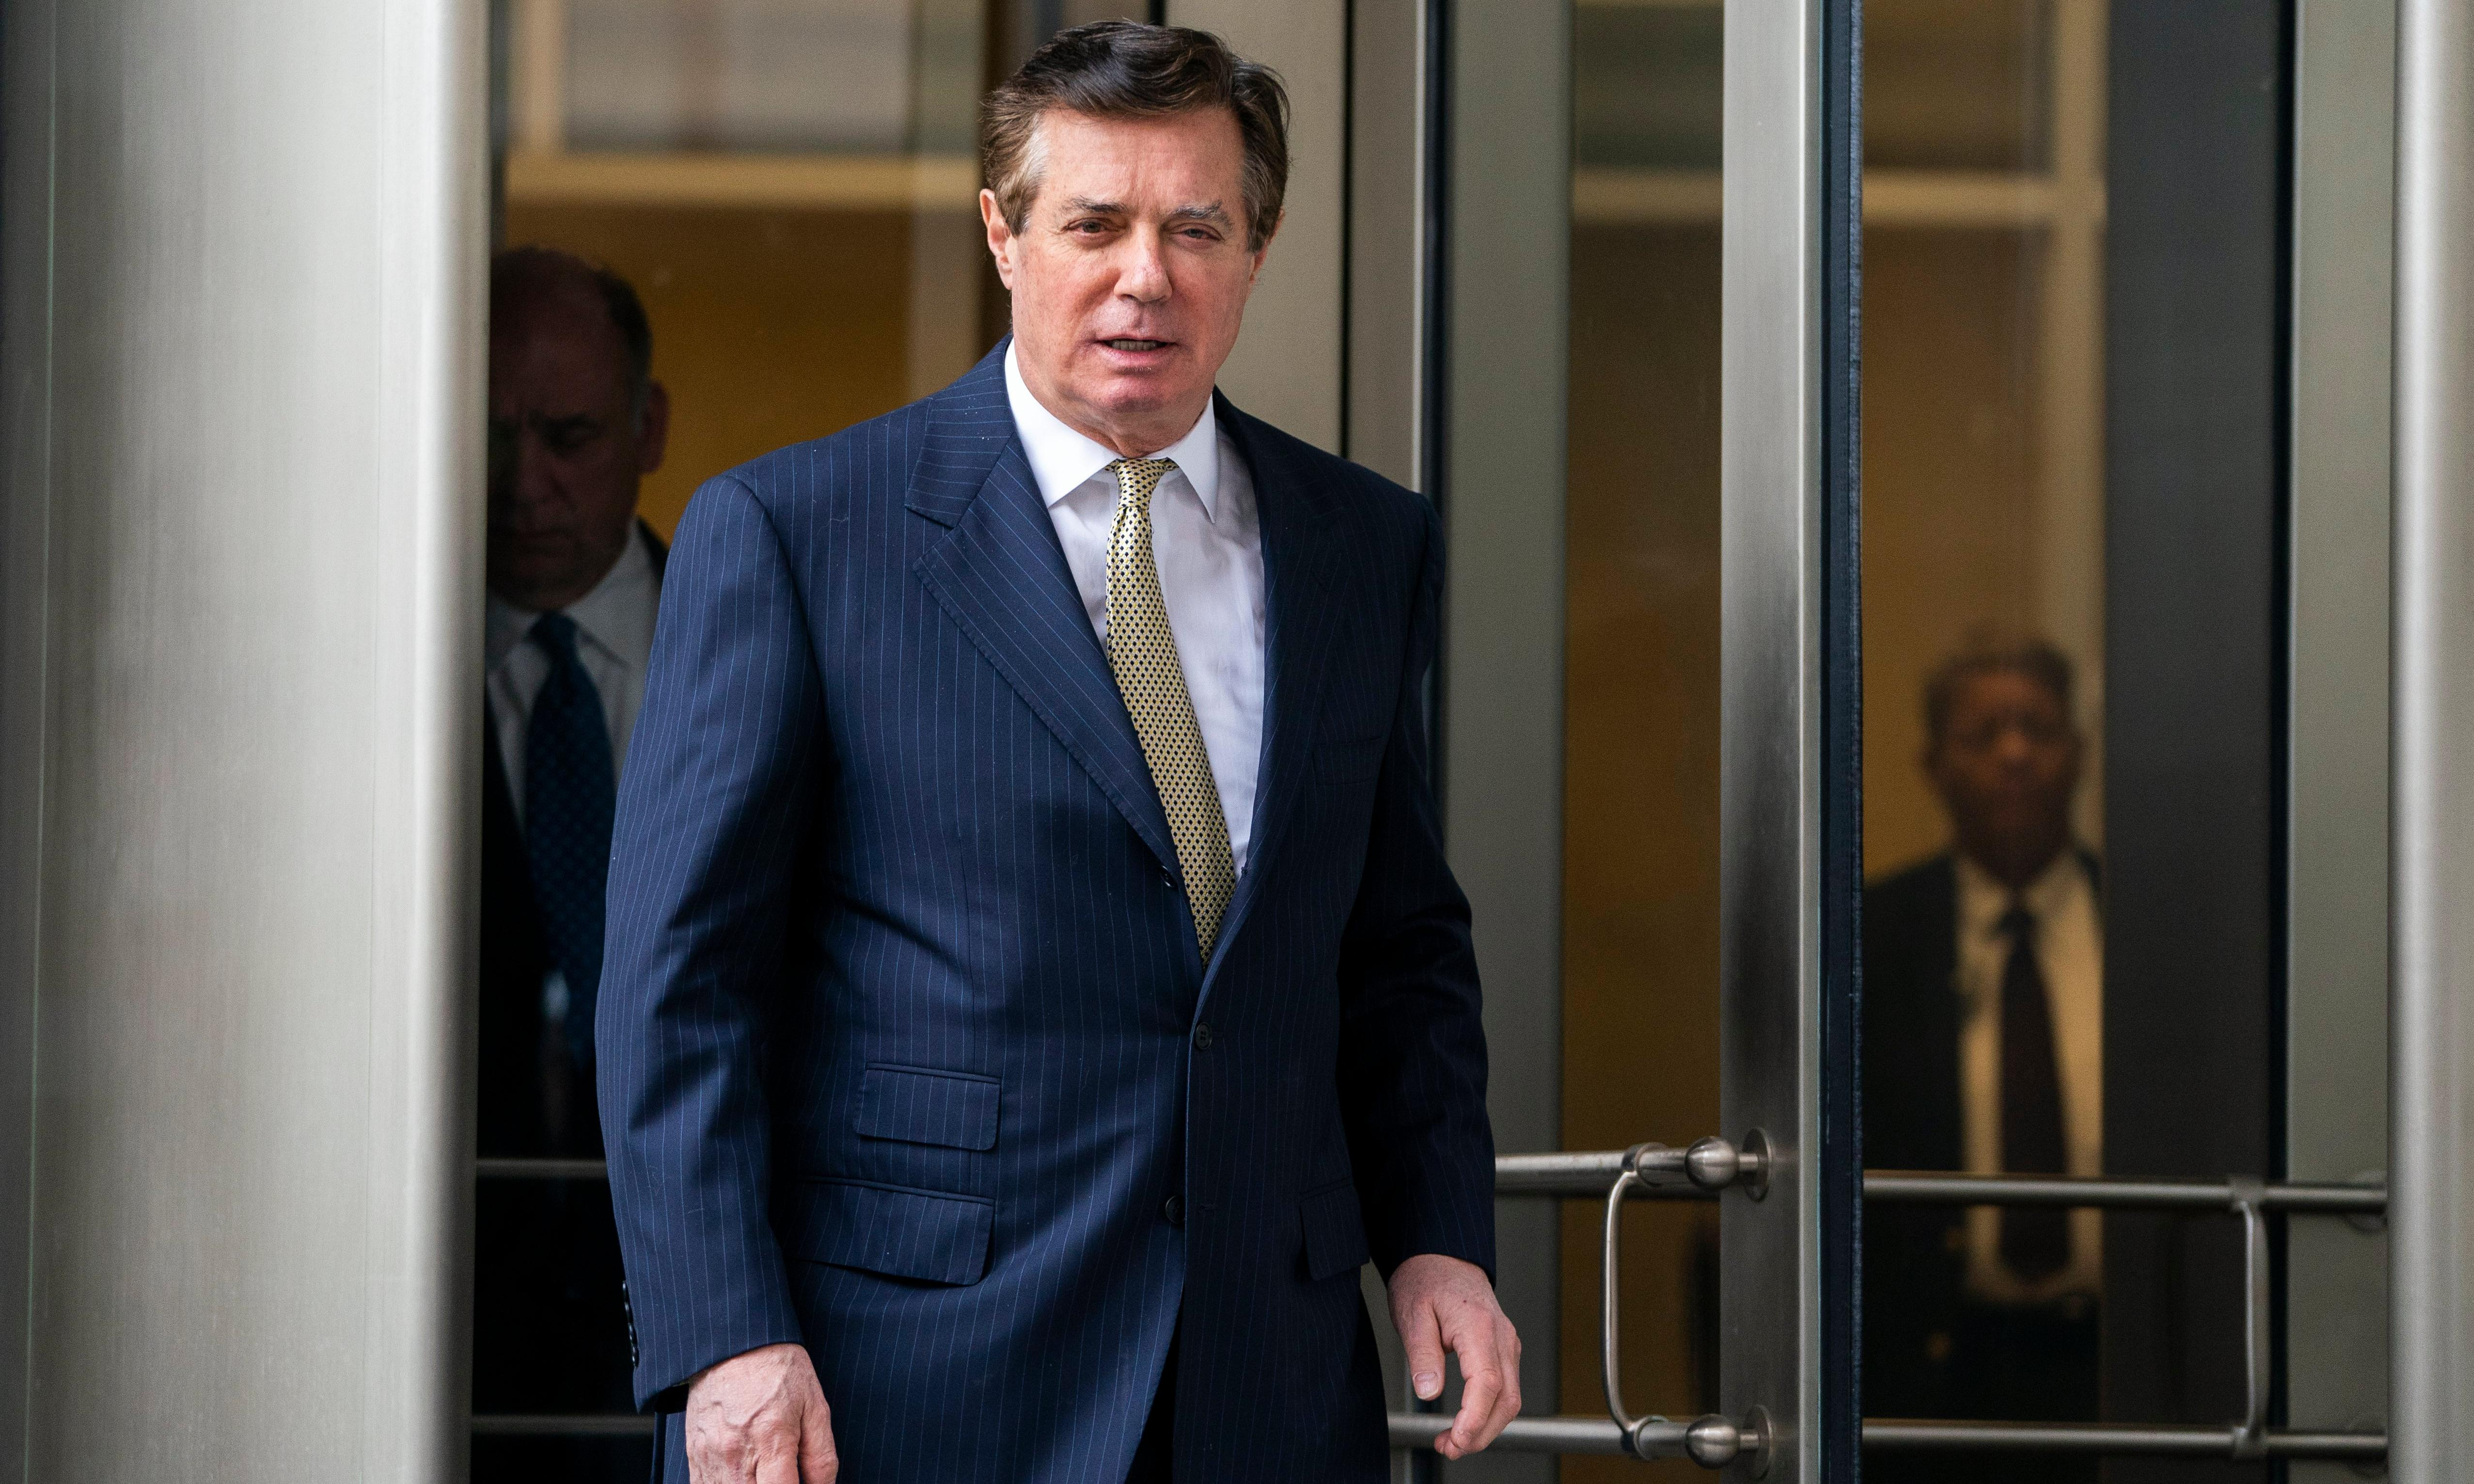 Mueller: Paul Manafort is hardened criminal who 'repeatedly' broke law